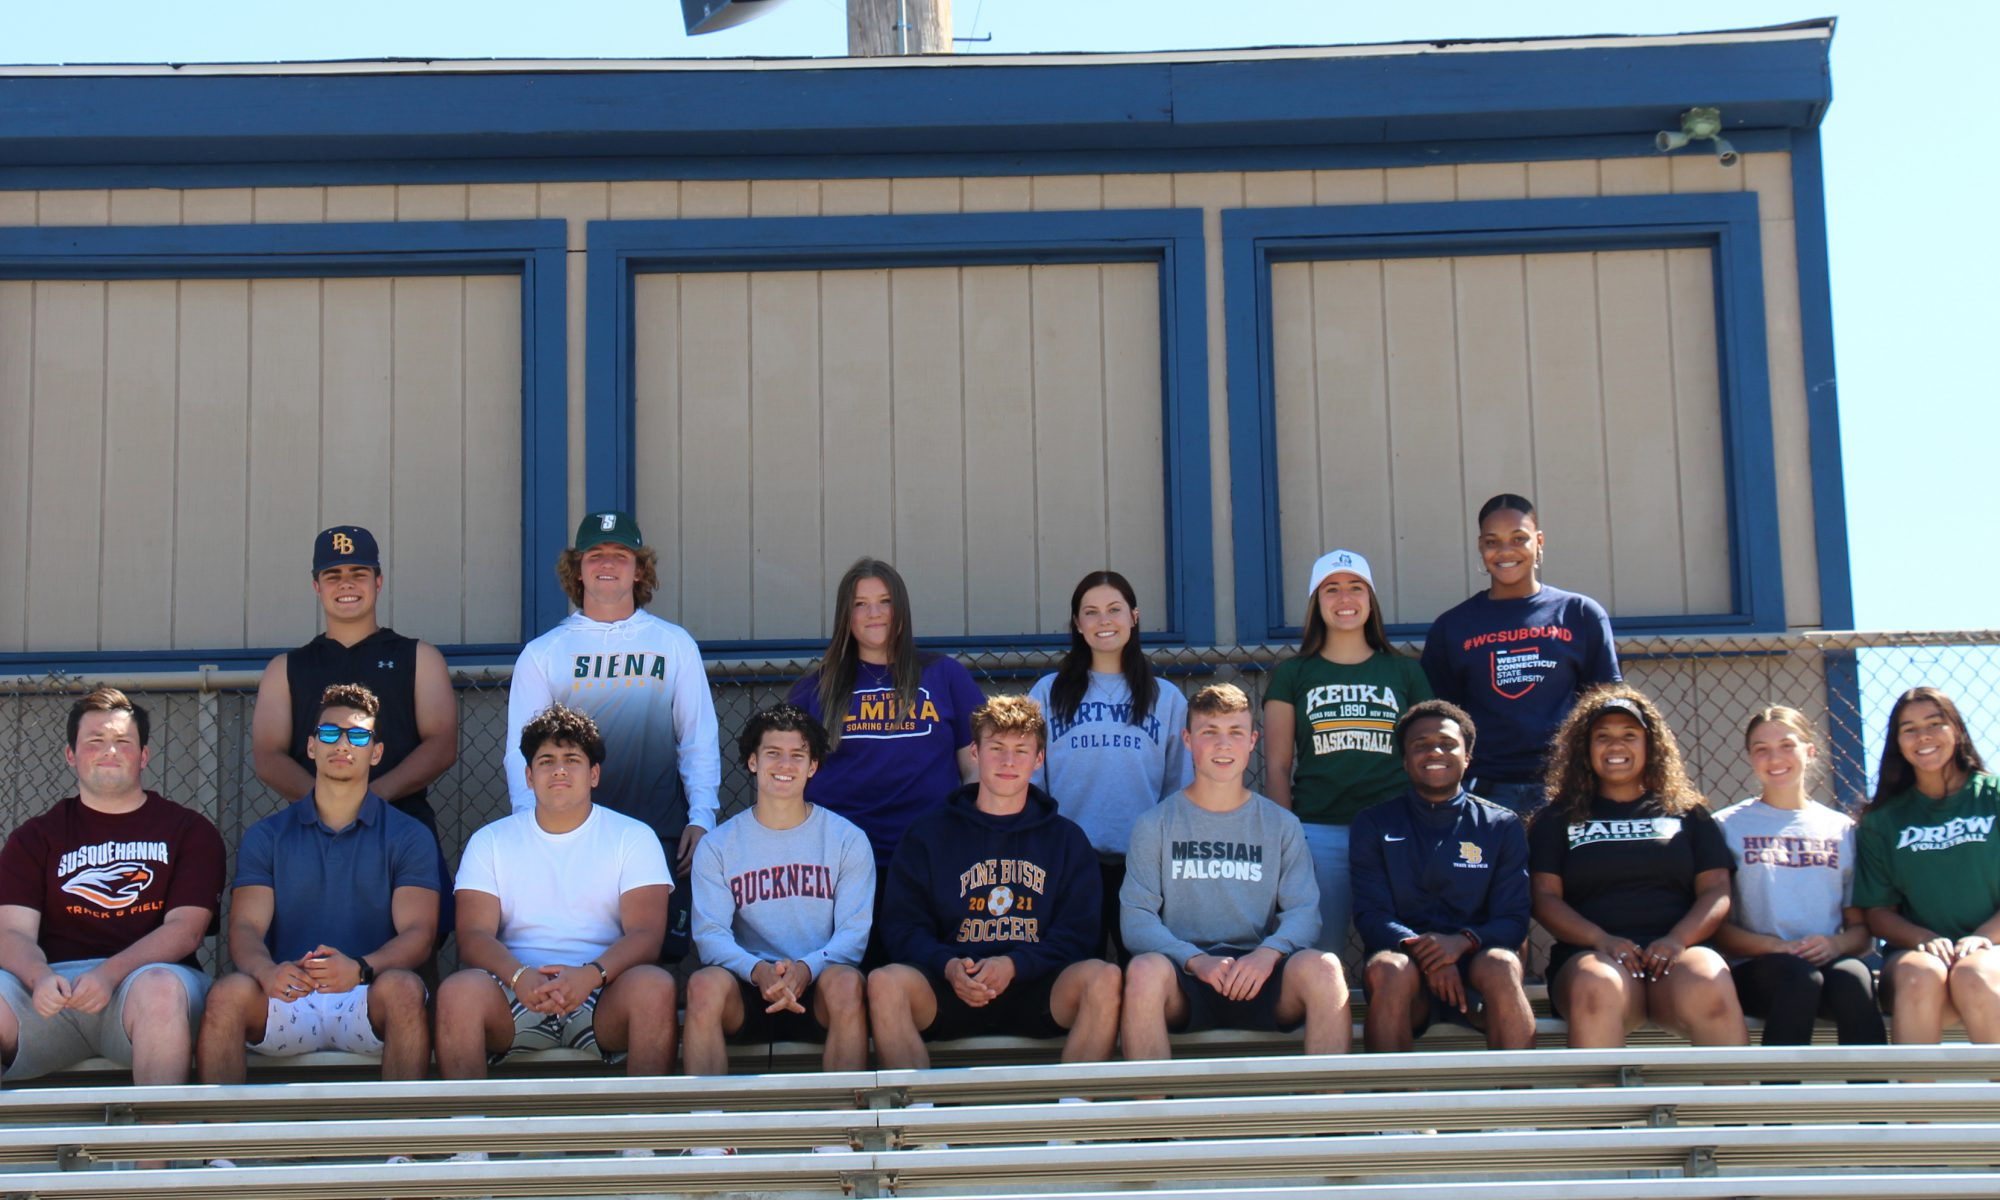 A group of athletes, most wearing their college shirts, sitting on the bleachers in front of the press box. There are two rows of kids, about 16 in total